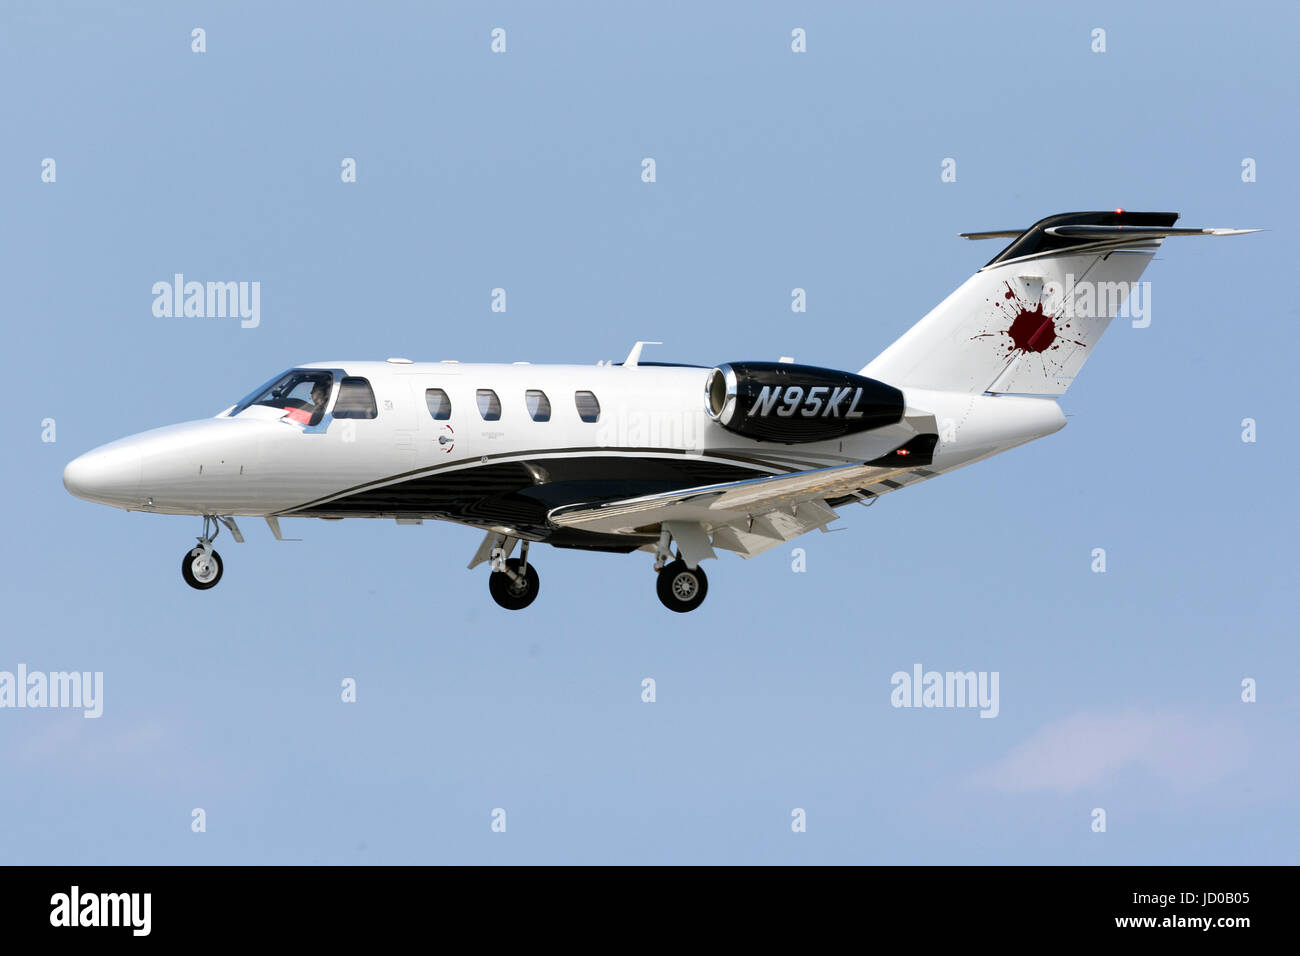 A private Cessna 525 CitationJet M2 [N95KL] on short finals runway 31. - Stock Image